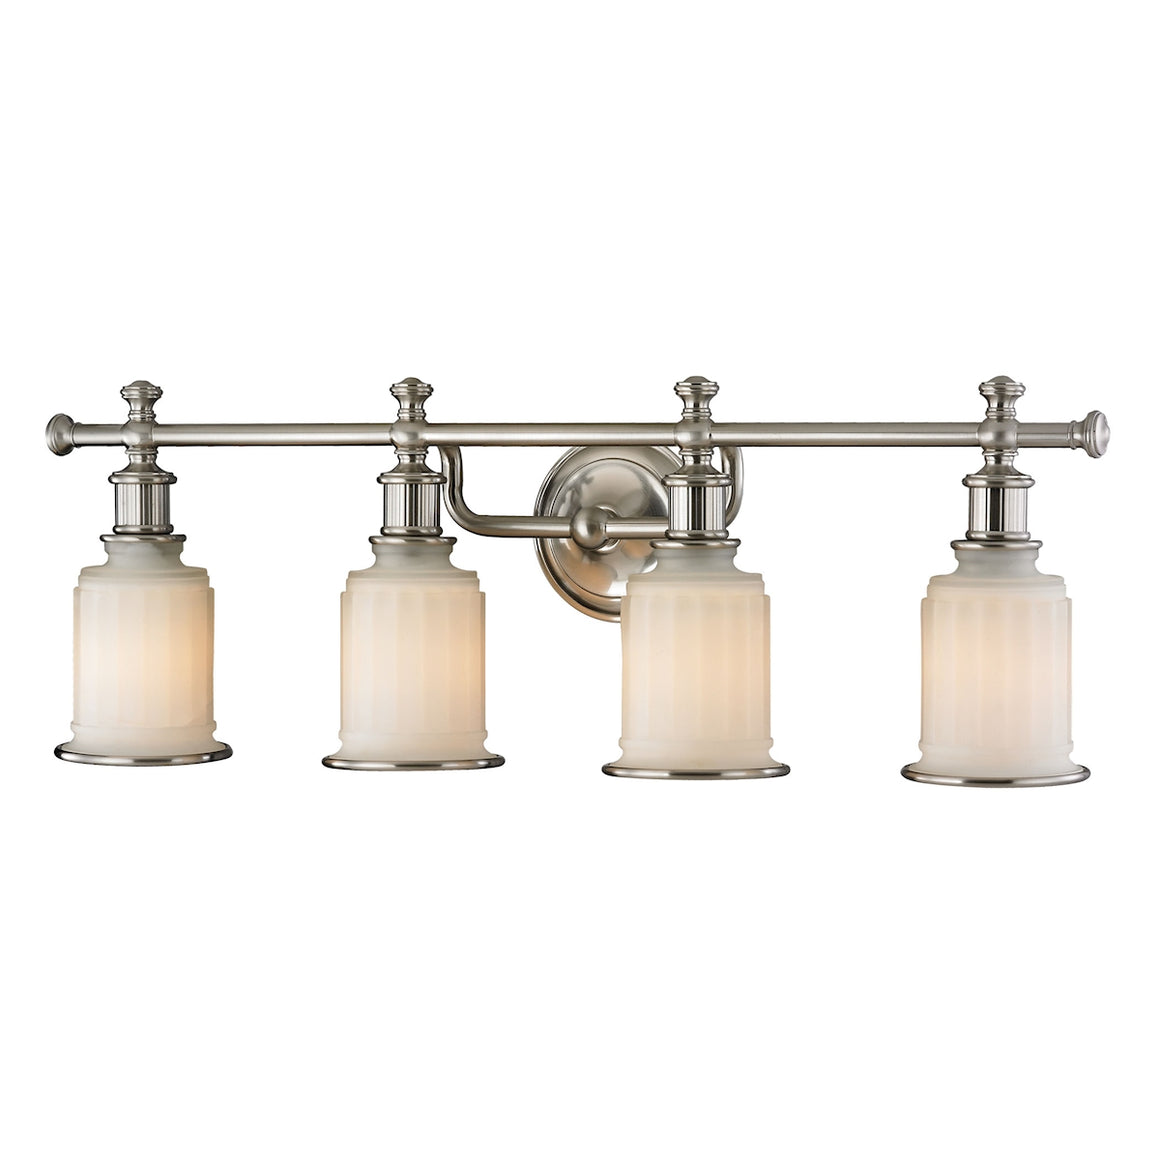 Acadia 4 Light Vanity In Brushed Nickel 52003/4 by Elk Lighting